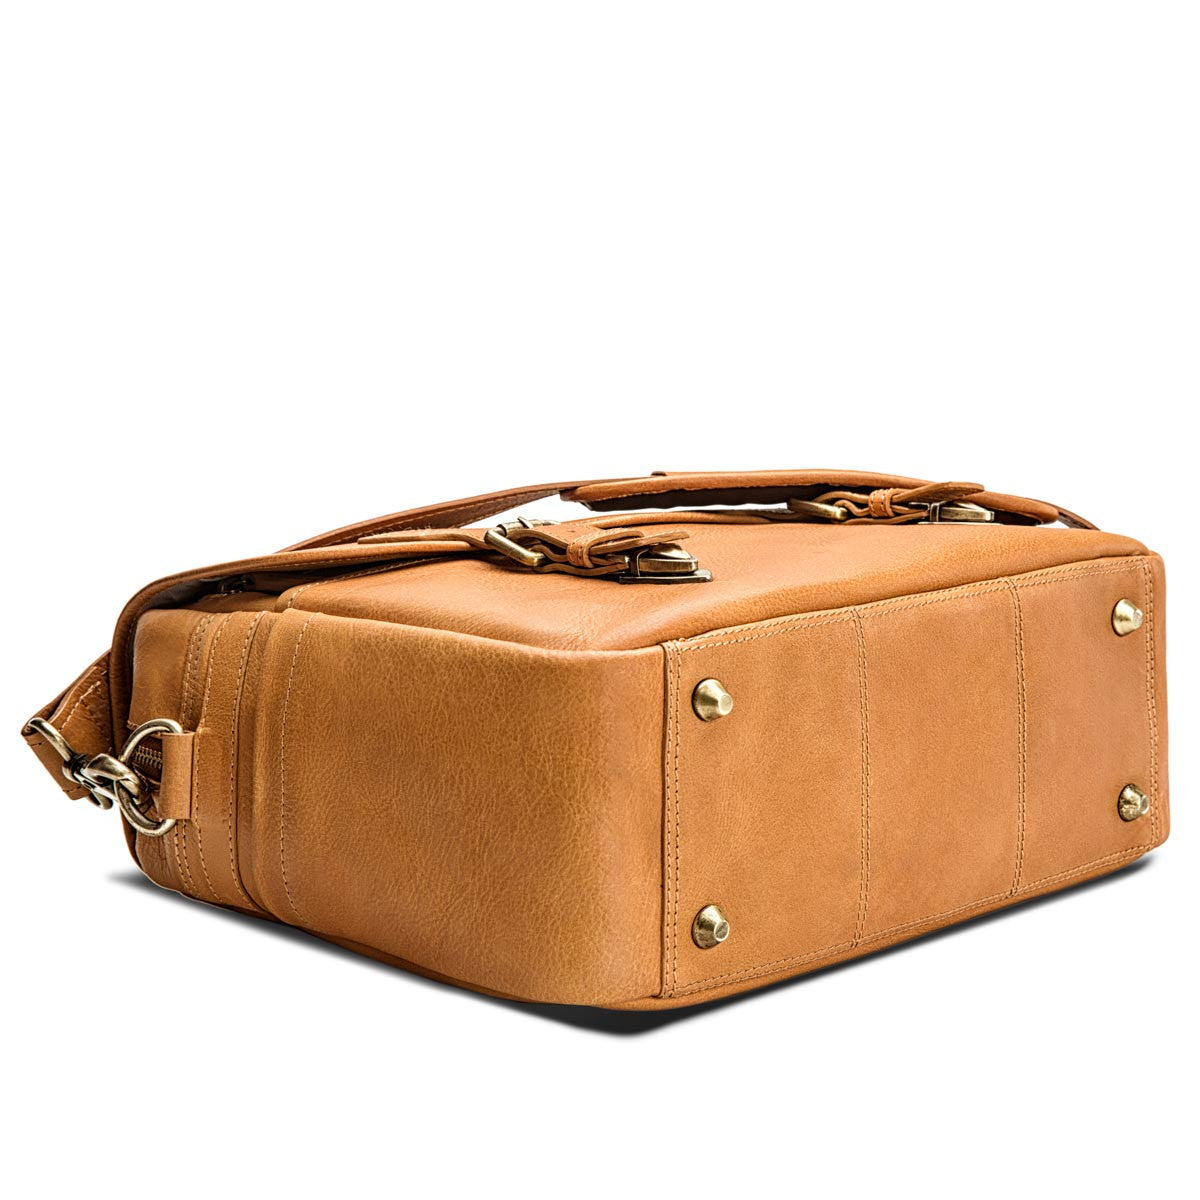 3d88830eac5 ... Rimo i, Luxury camera bags in Tan leather by Blackforest bags ...